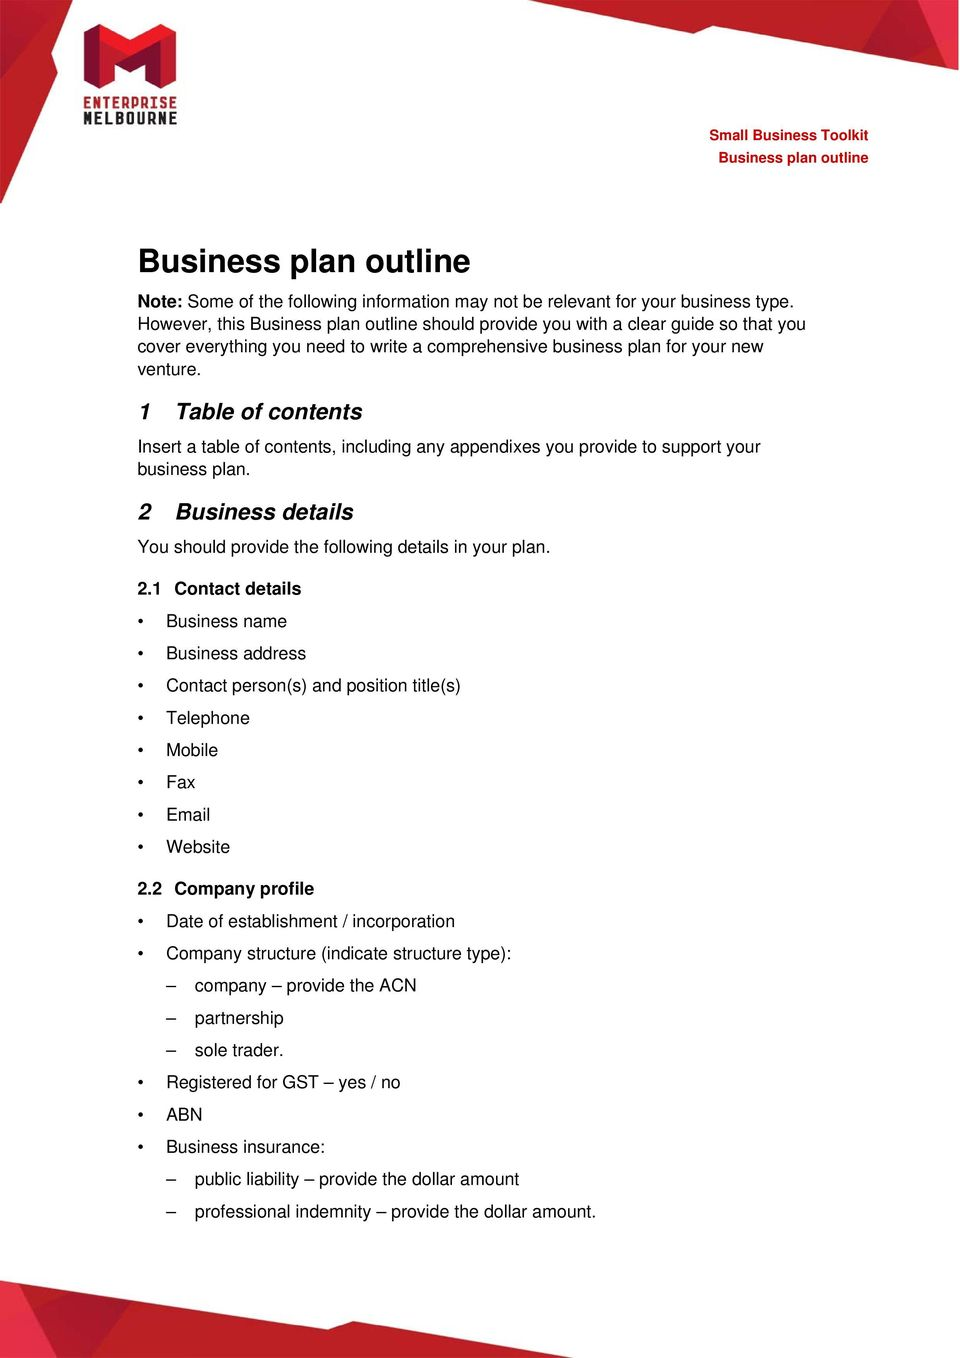 1 Table of contents Insert a table of contents, including any appendixes you provide to support your business plan. 2